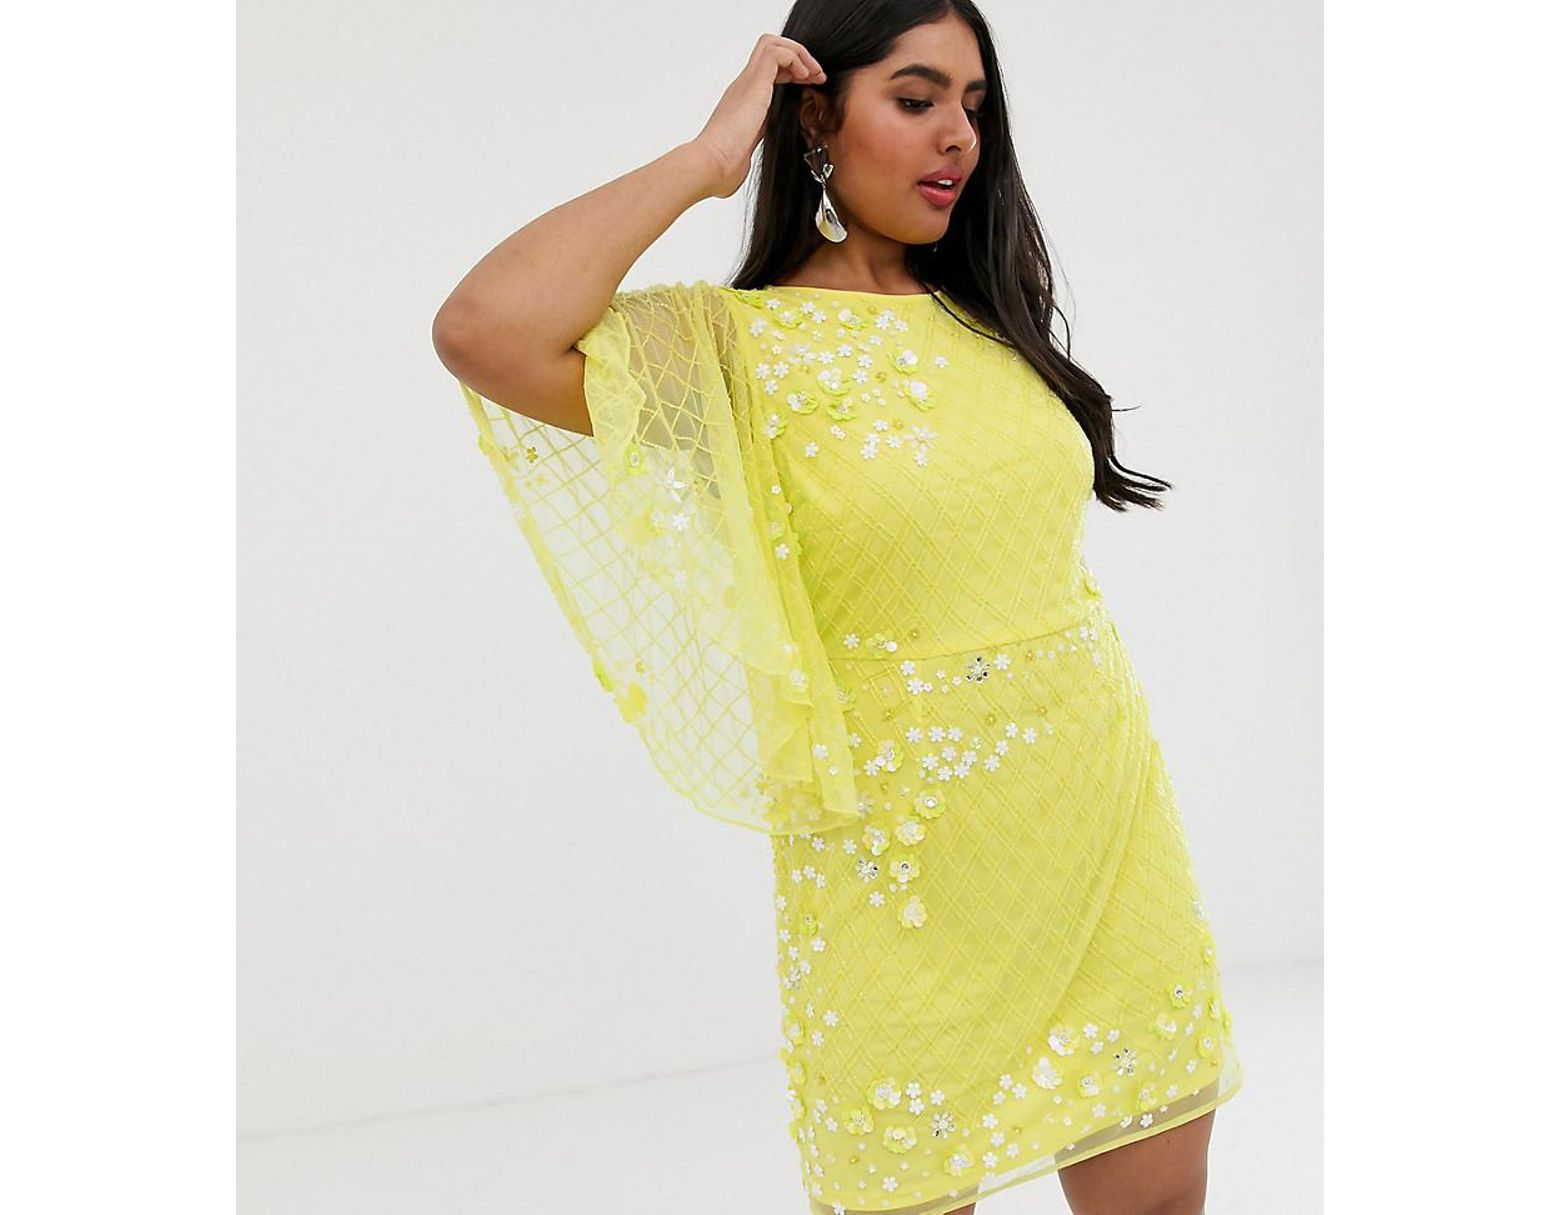 cdccd821be03 ASOS Asos Design Curve Heavily Embellished Mini Shift Dress in Yellow - Lyst